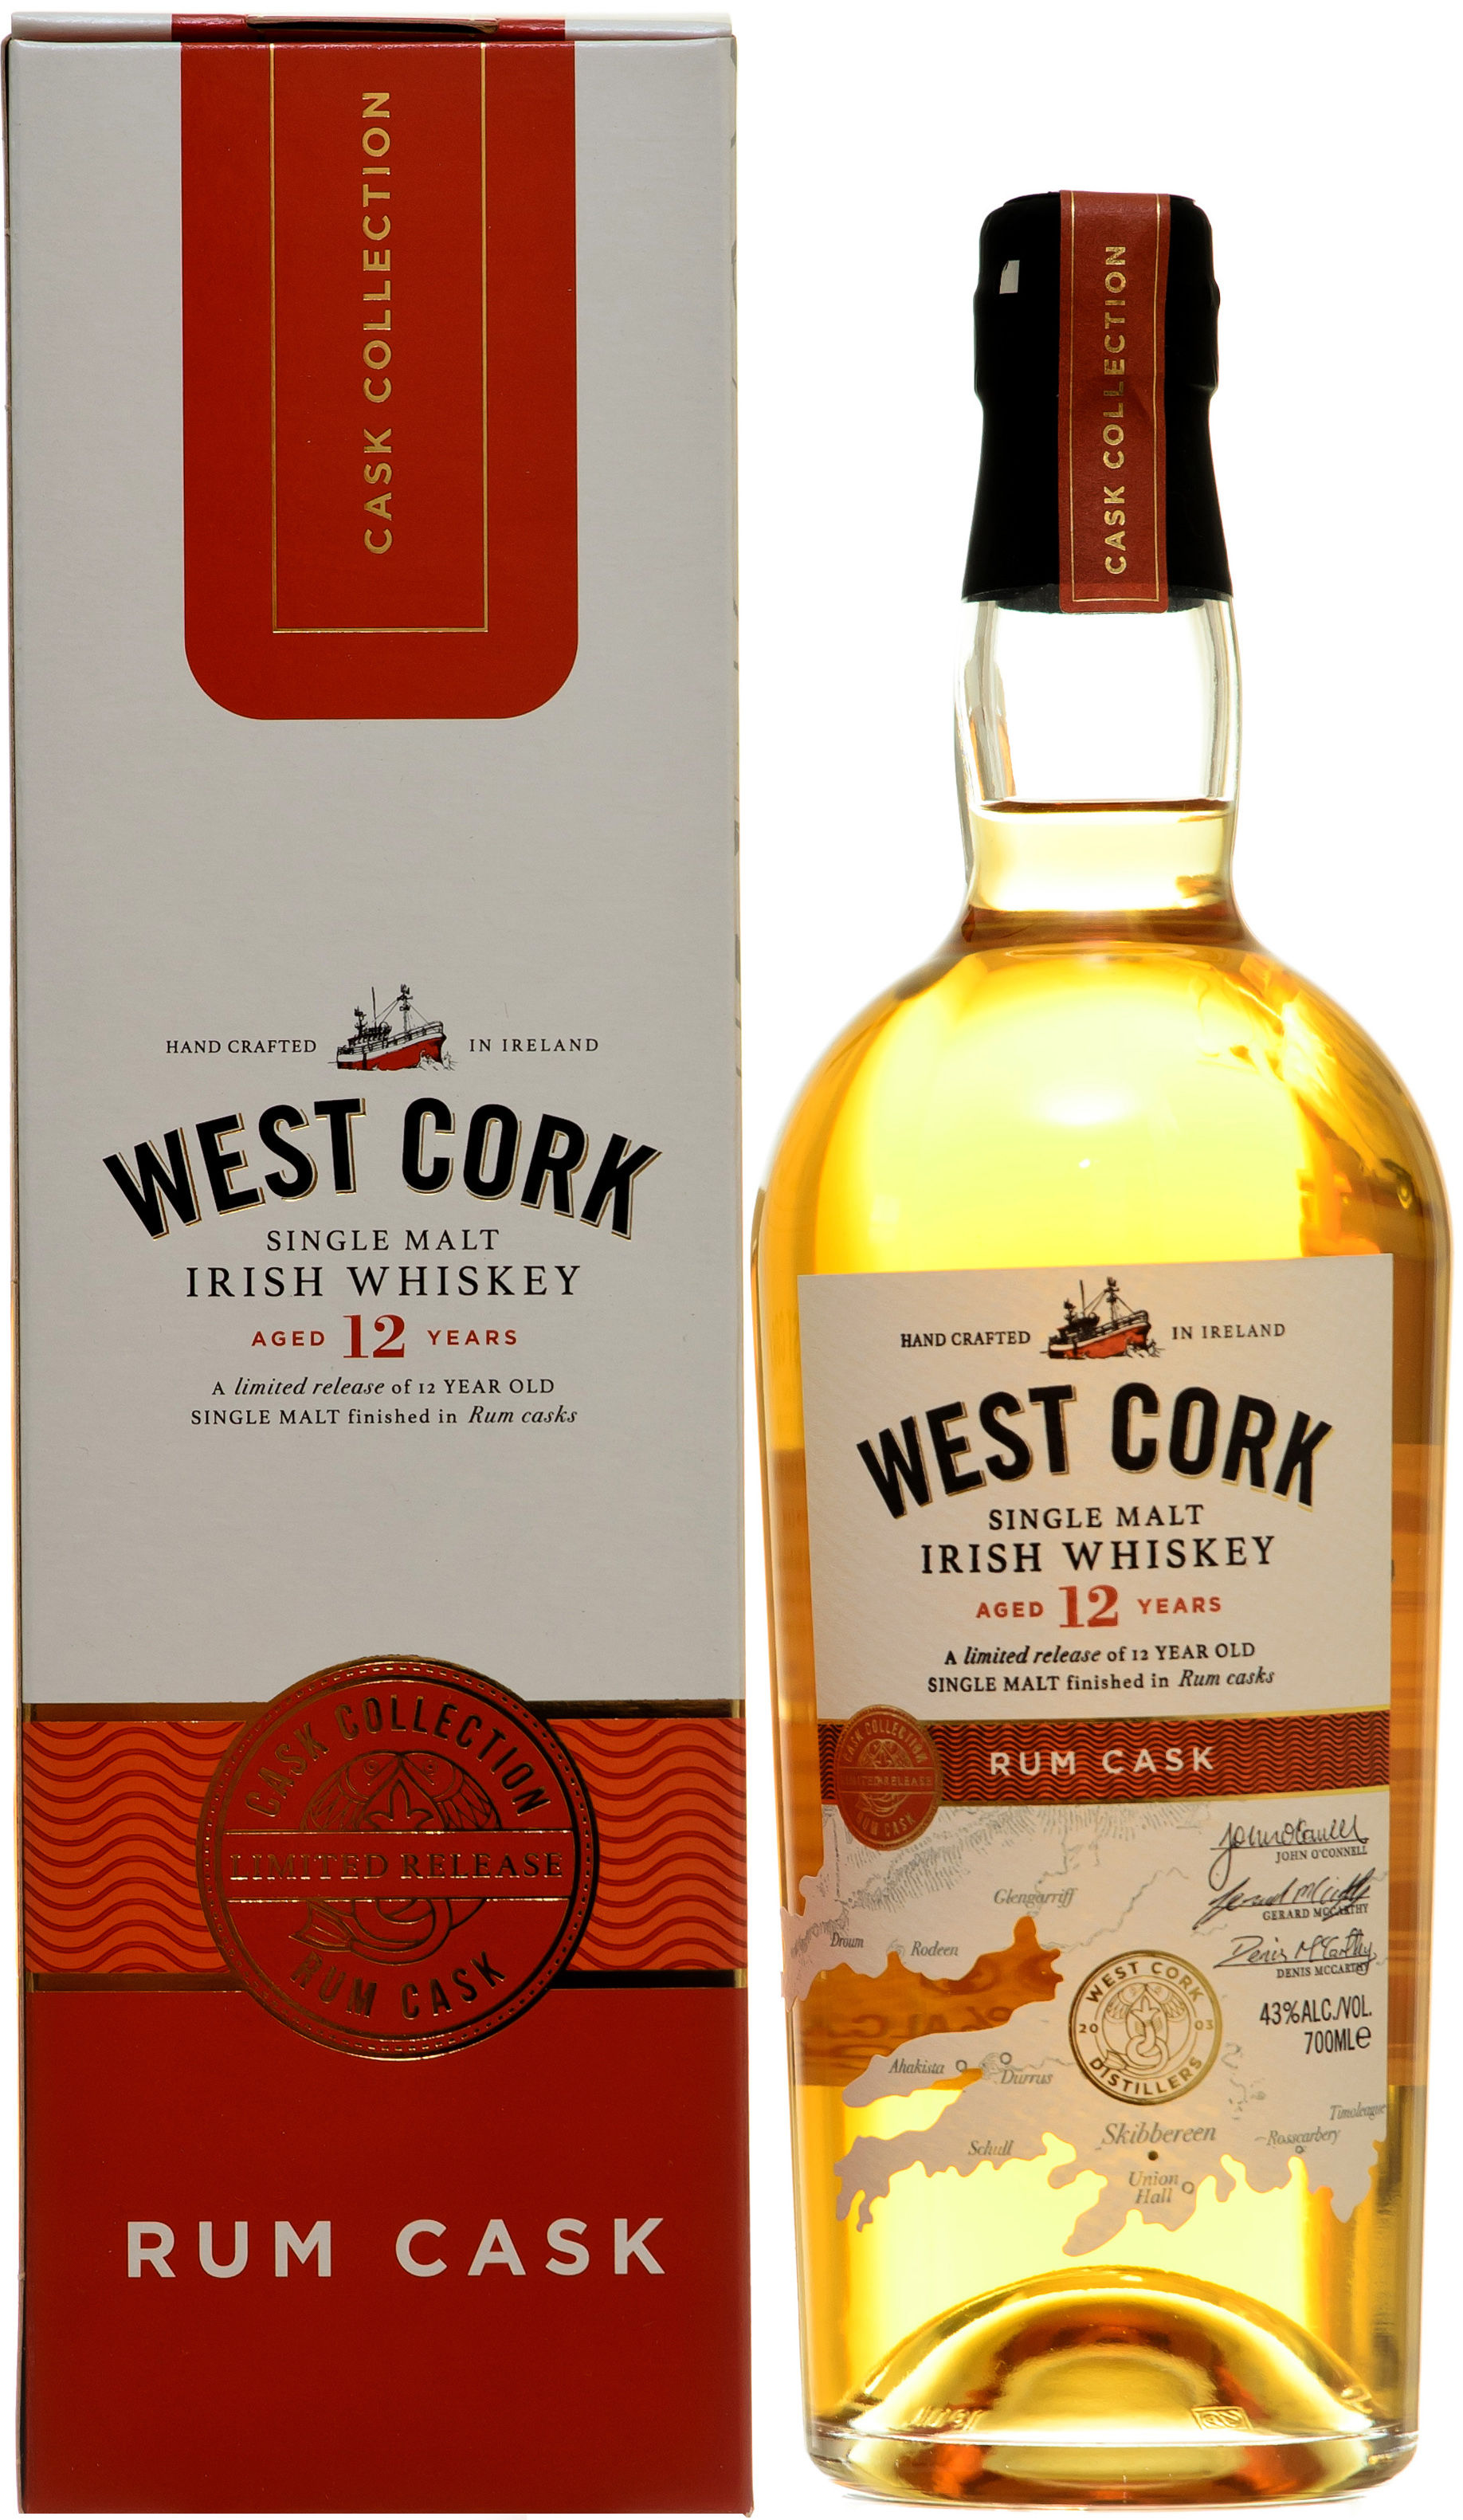 West Cork 12YO Rum Cask Single Malt